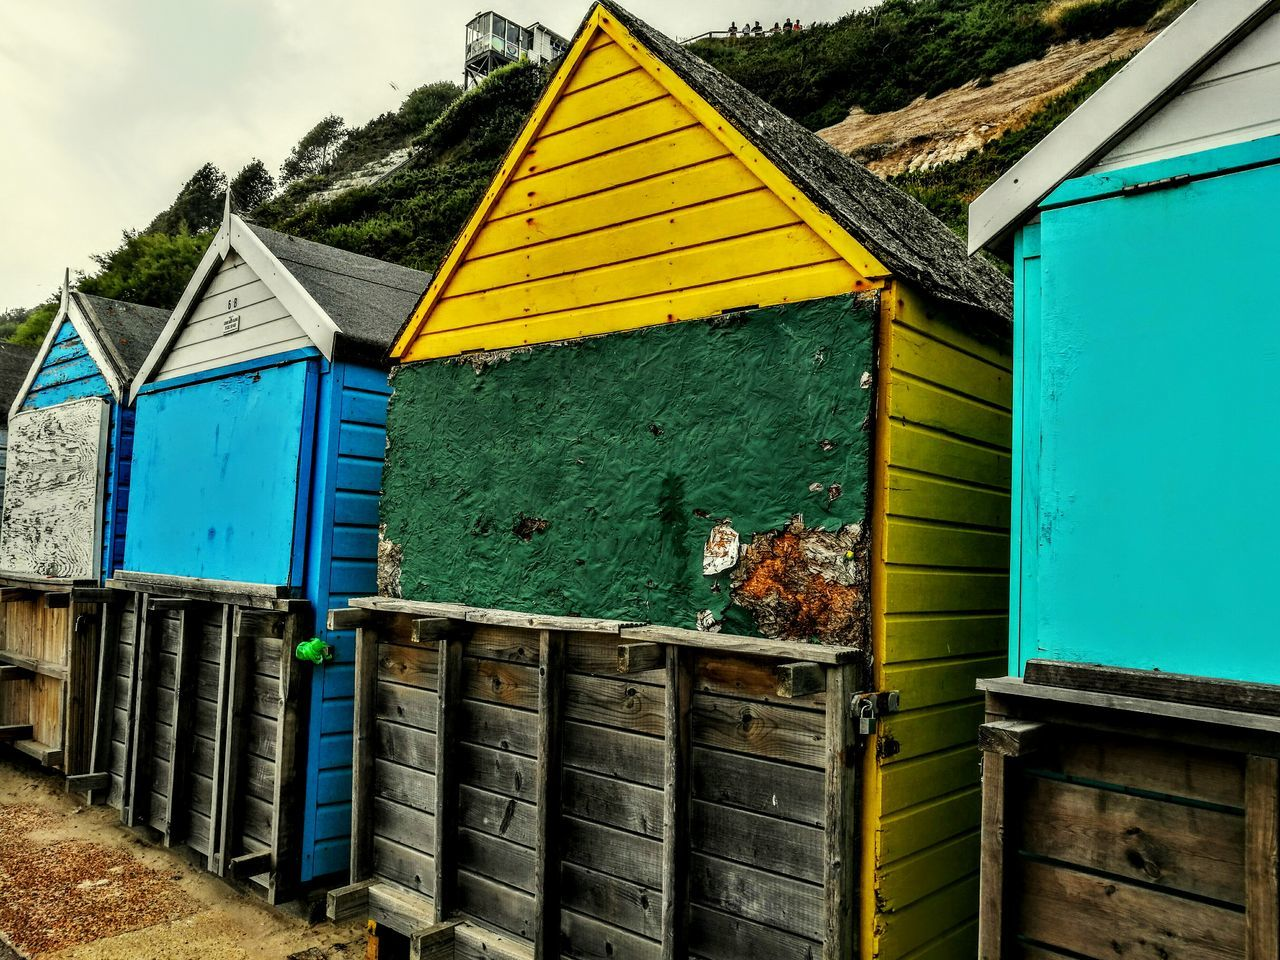 Beach Huts Colours And Patterns Wood Art Beach Photography Summer Memories 🌄 Holiday Season In The Making Good Old Times Holiday Trip My Kind Of Art Love ♥ HuaweiP9